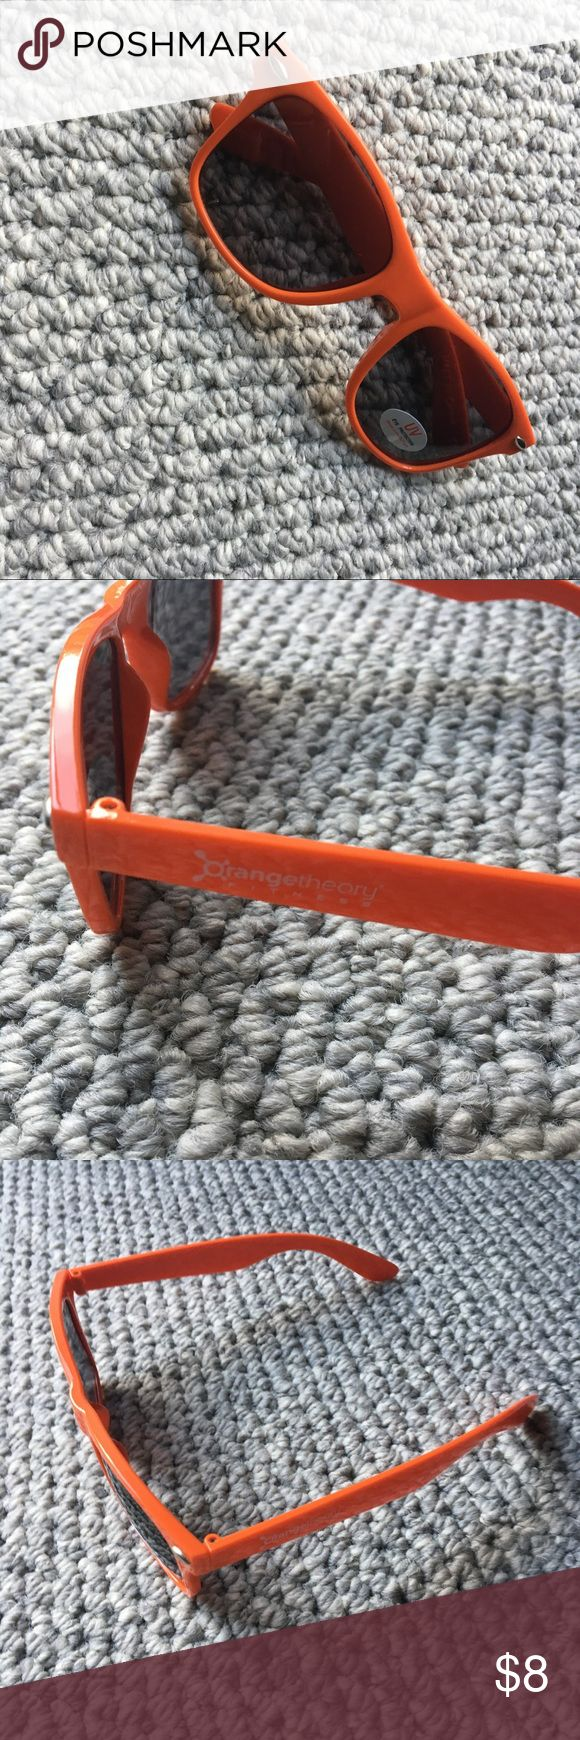 NEW Orangetheory Fitness Sunglasses New! Never been worn - sunglasses from Orange Theory Fitness Accessories Sunglasses